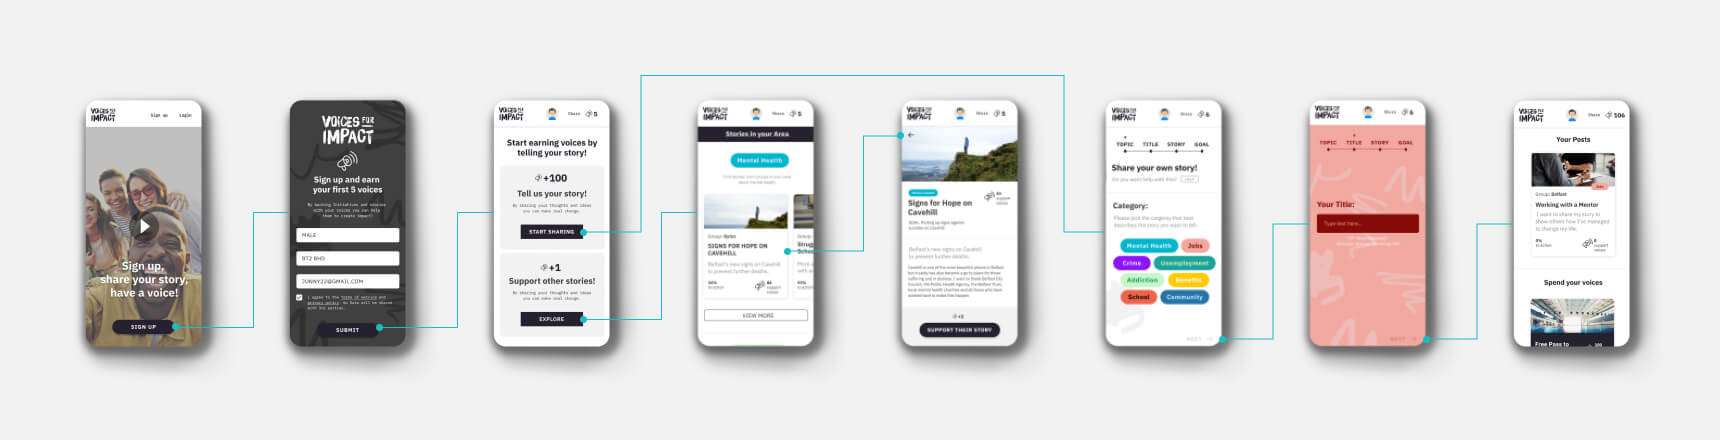 Case Study: Voices for Impact - Mobile App Flow